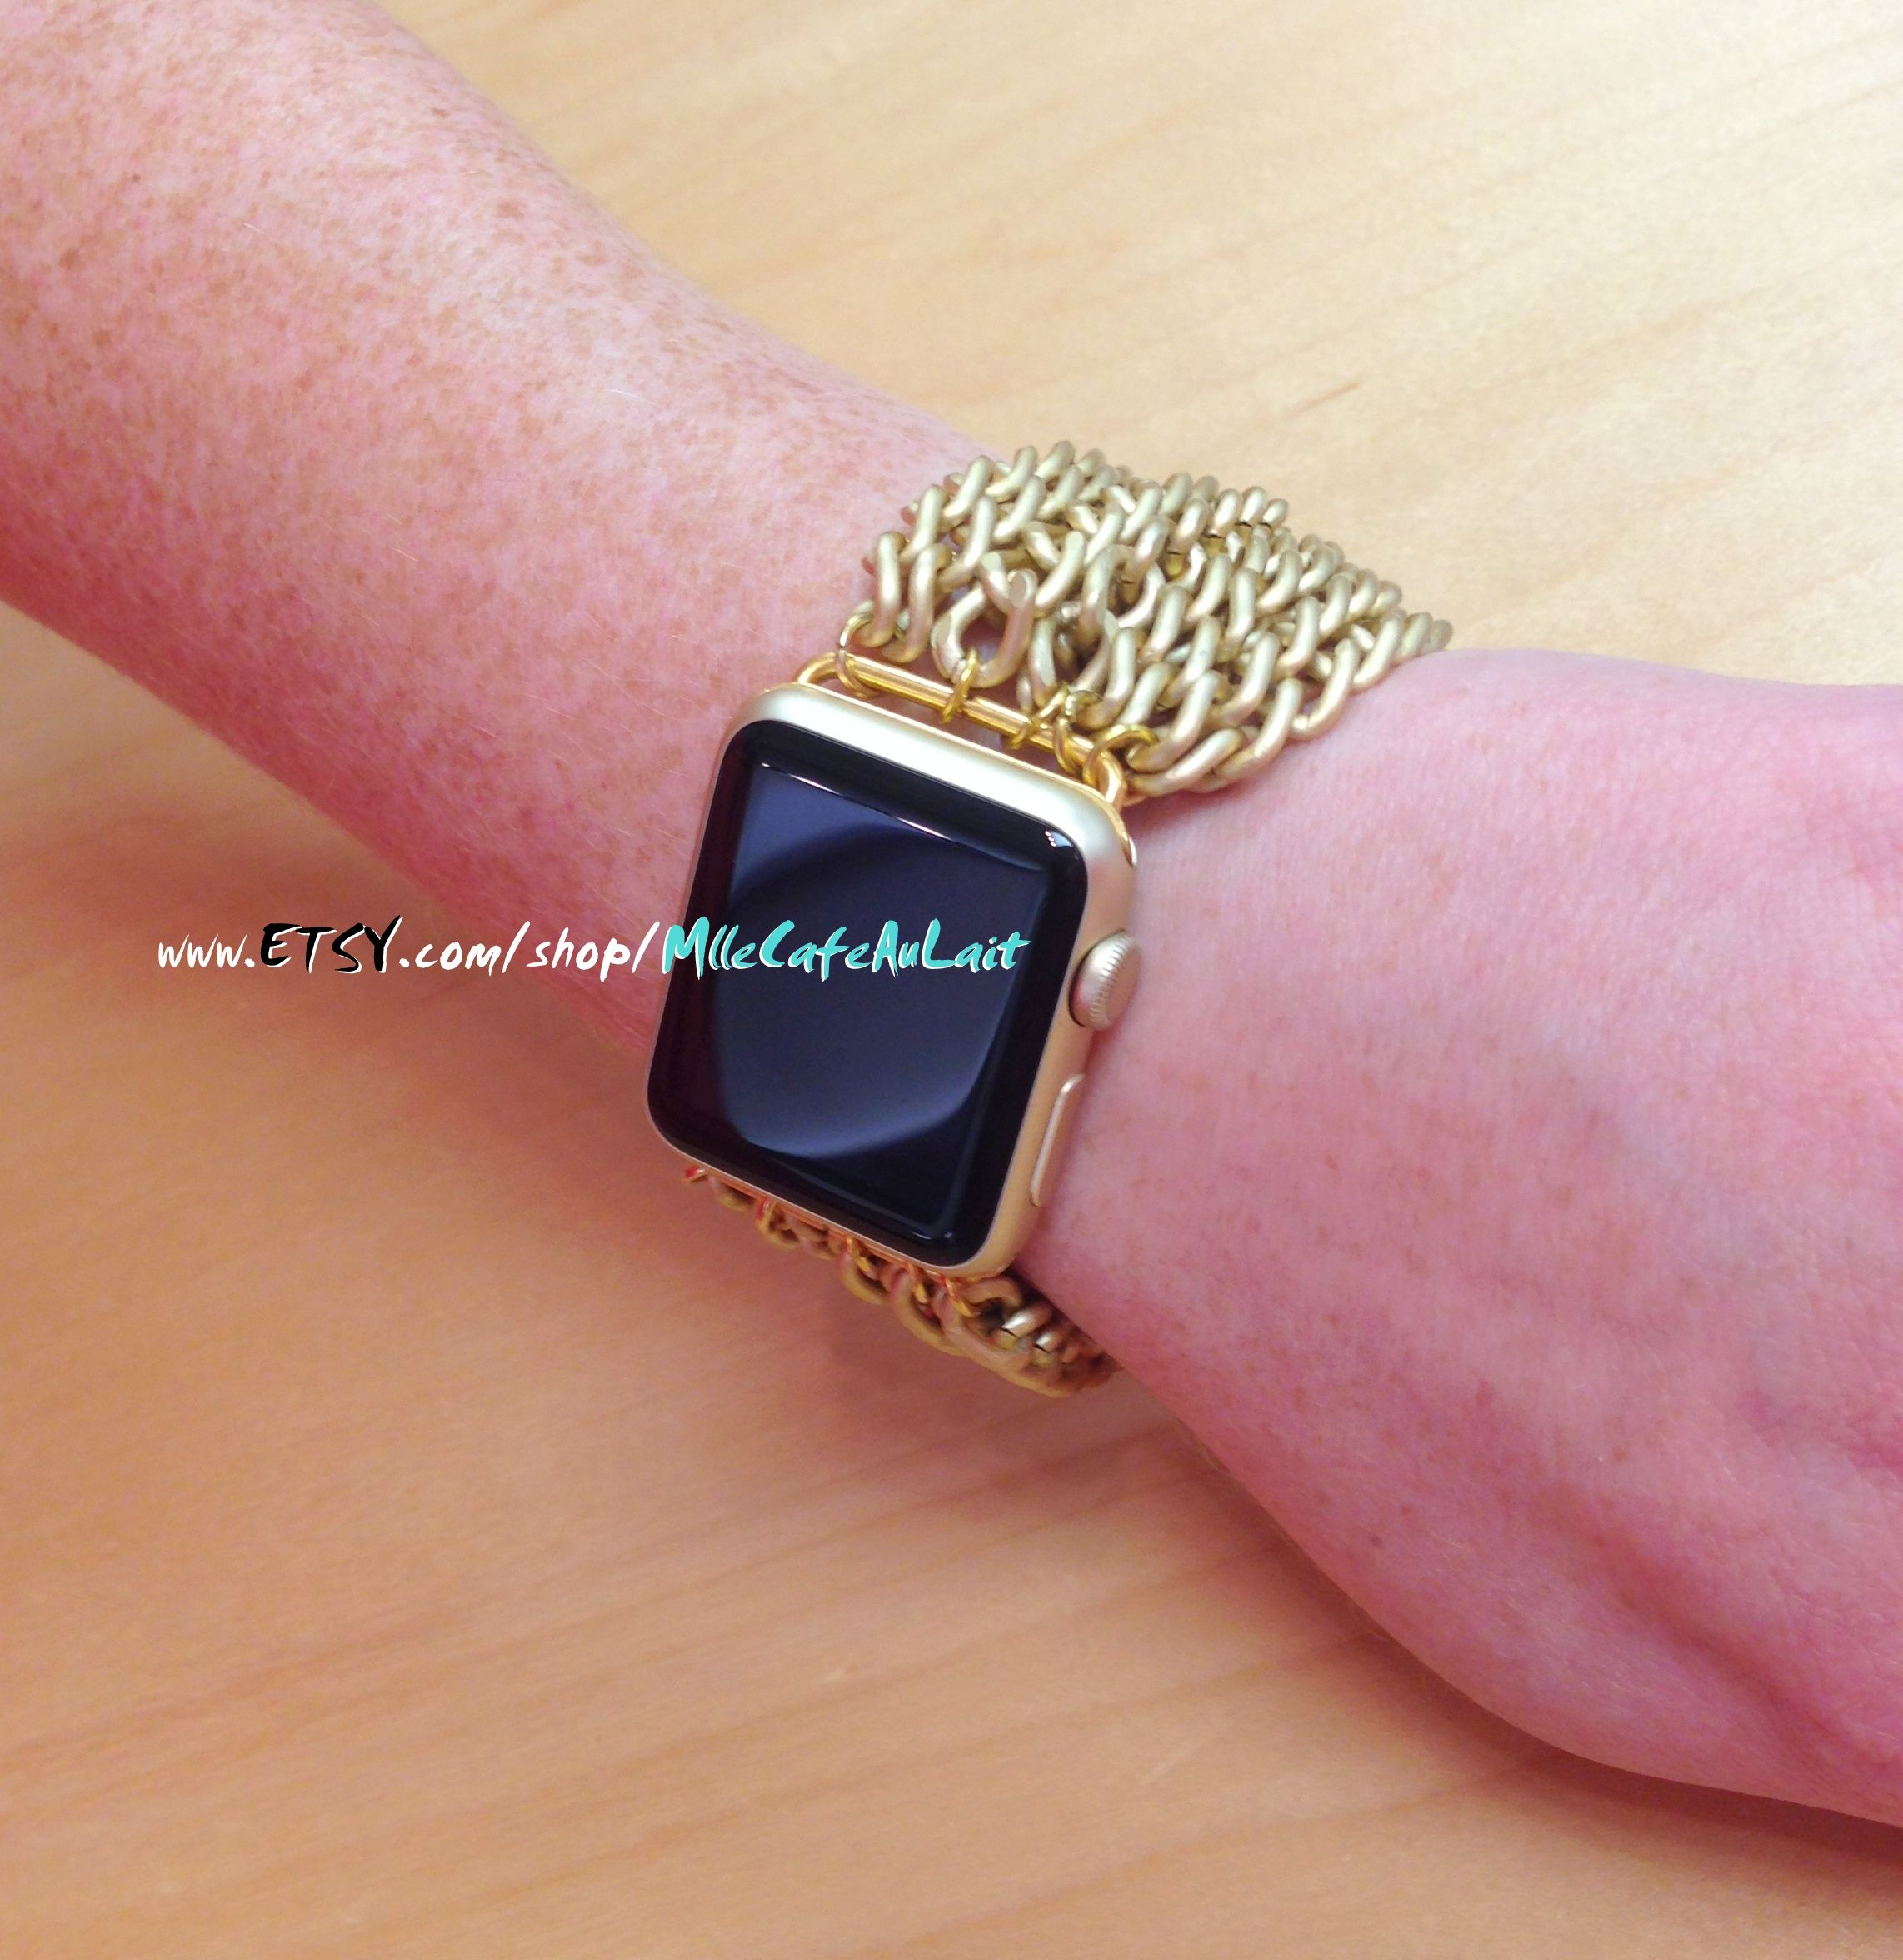 Pin by MlleCafeAuLait on Apple Watch Pinterest Gold apple watch